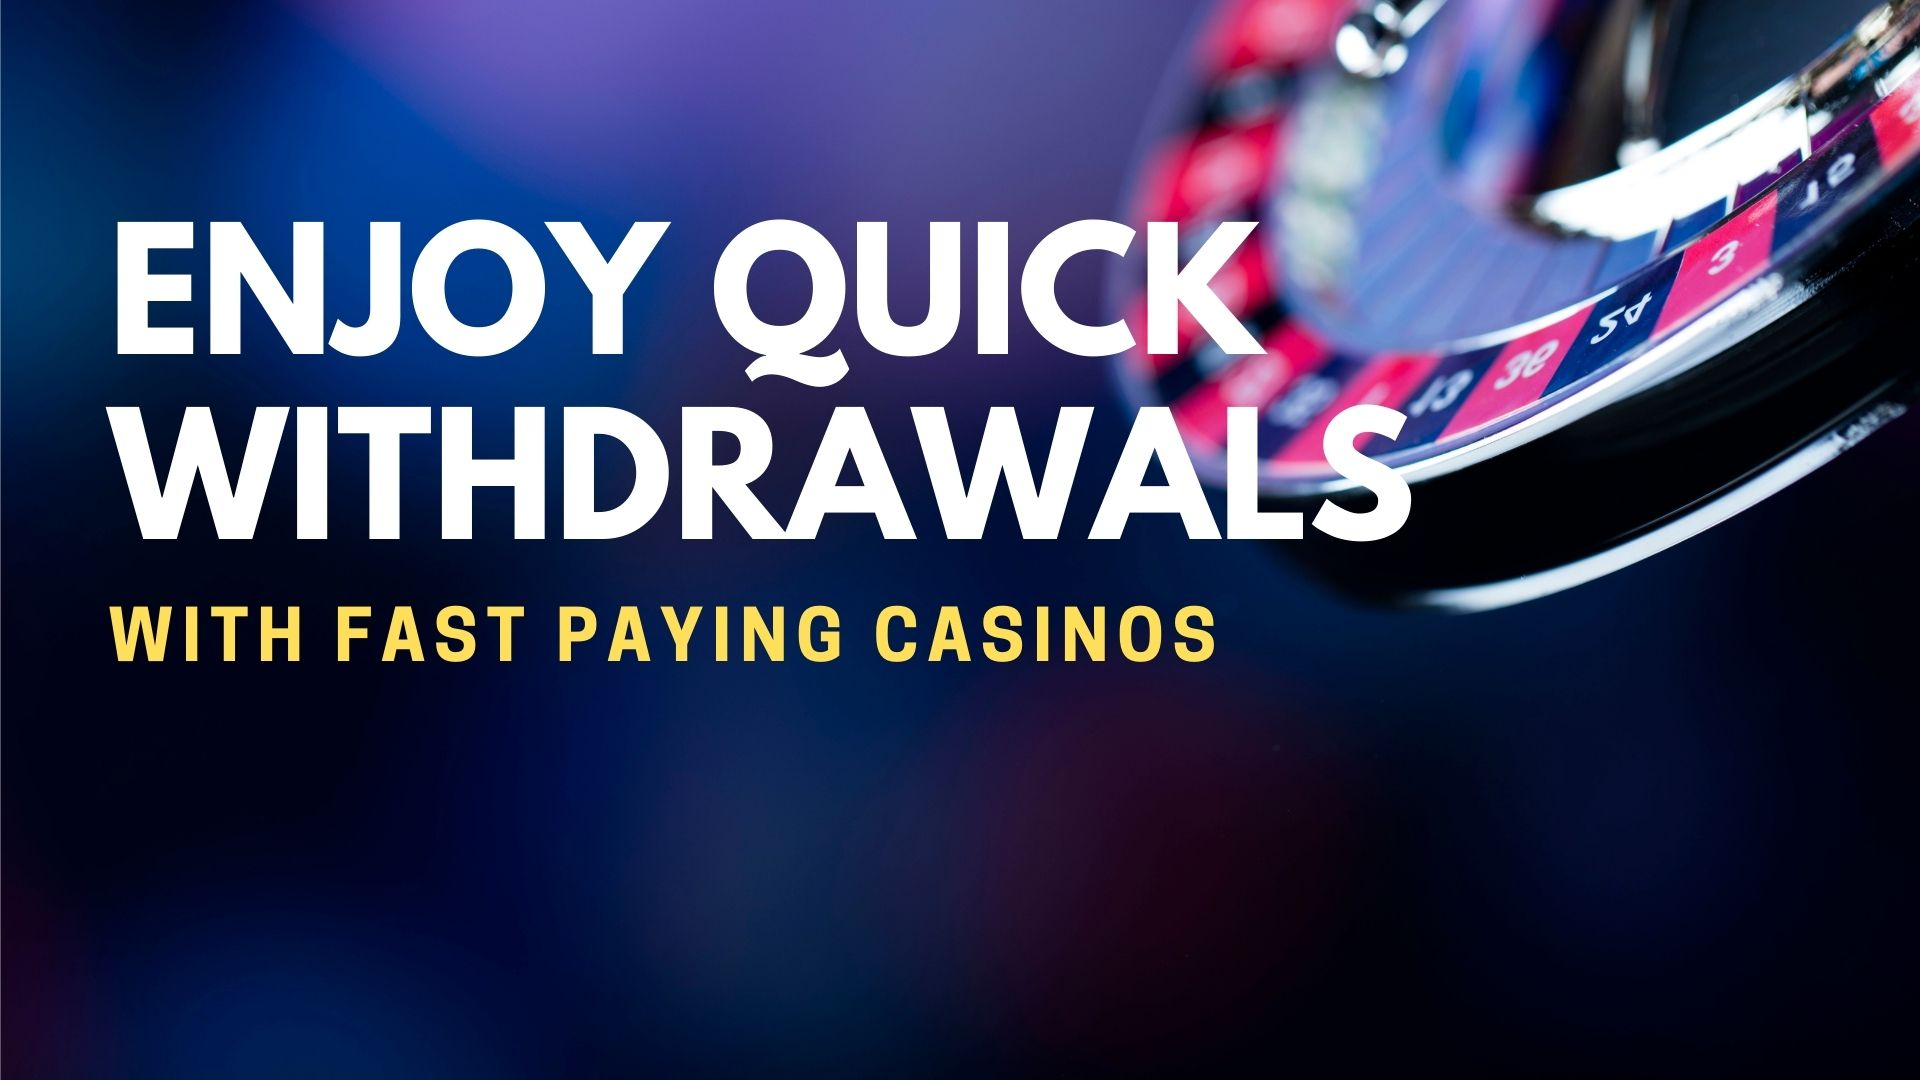 Enjoy Quick Withdrawals With Fast Paying Casinos